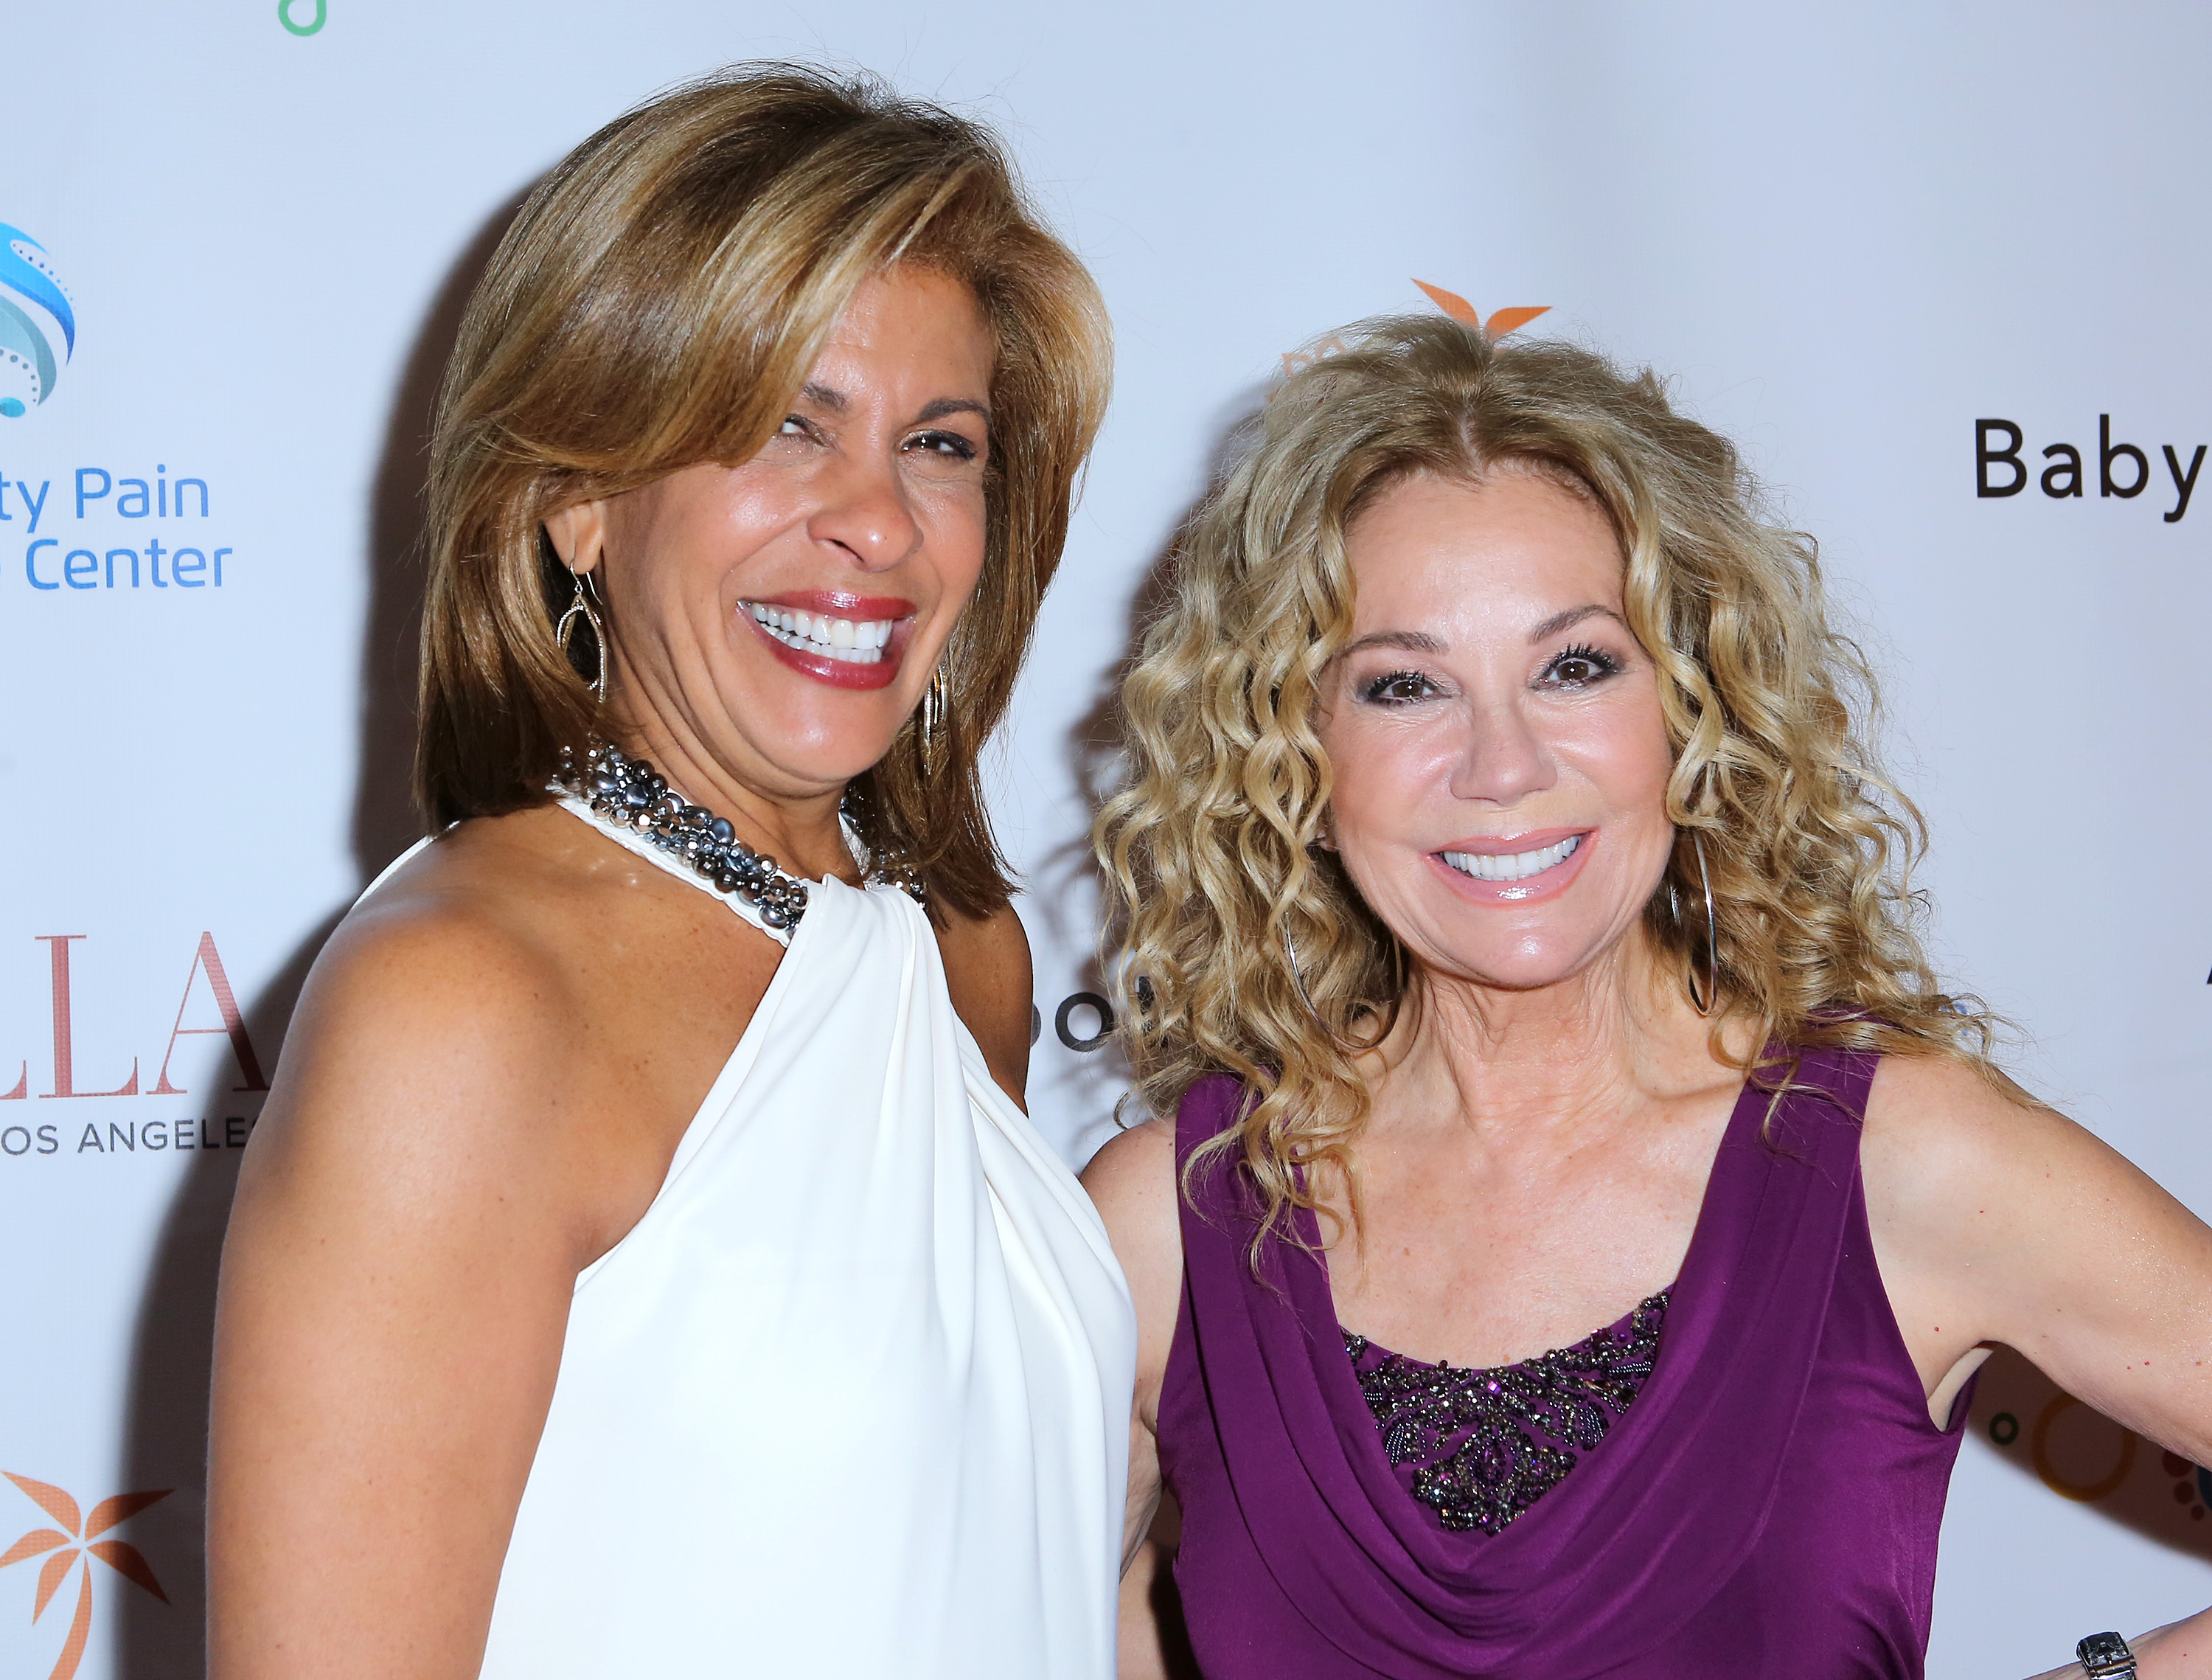 NEW YORK, NY - DECEMBER 06:  Hoda Kotb and Kathie Lee Gifford appear to celebrate the BELLA New York Holiday Issue Cover Party and Holiday Shopping Event on December 6, 2016 in New York City.  (Photo by Donna Ward/Getty Images)